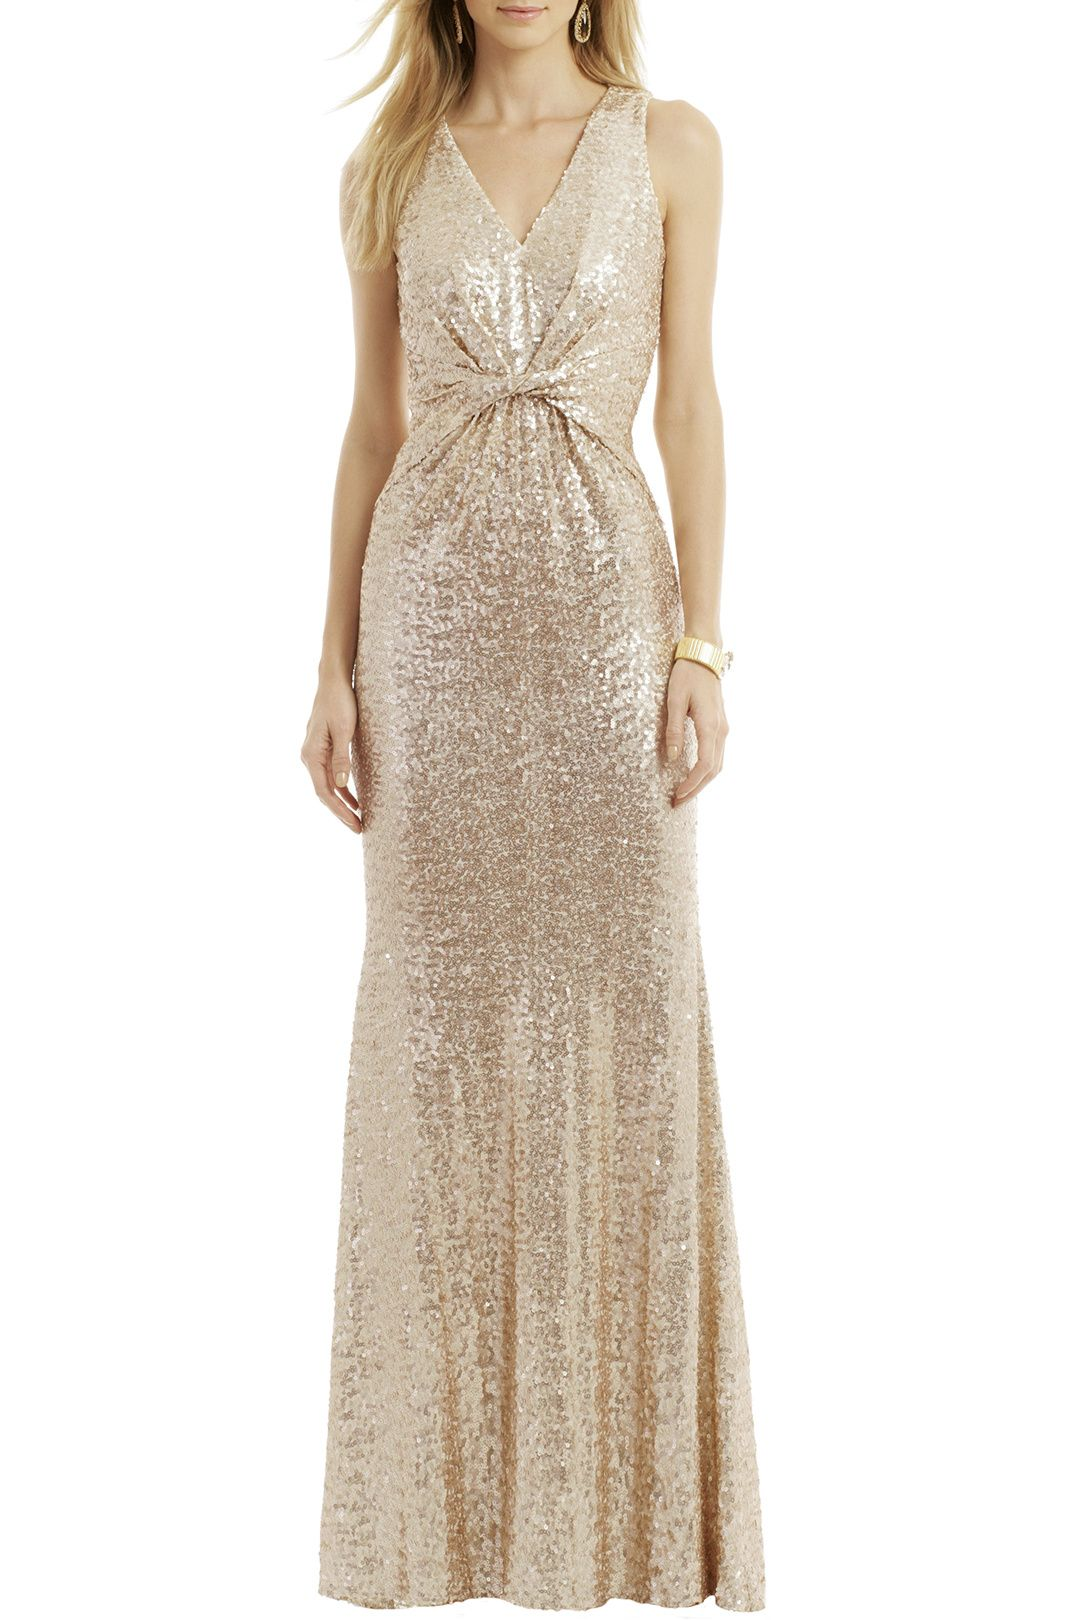 Twist It Out Gown by Badgley Mischka for   Rent The Runway